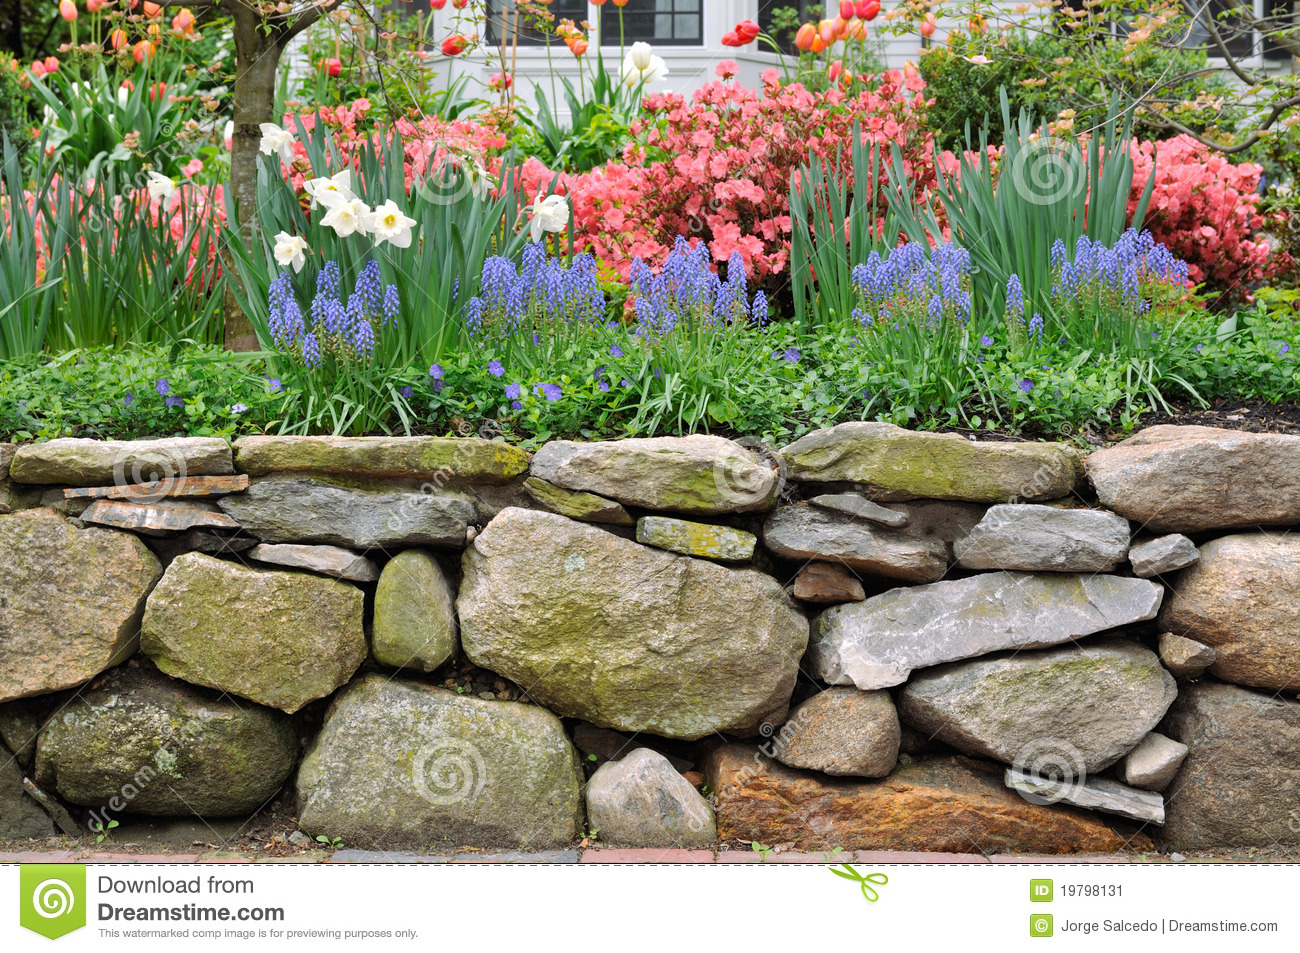 Dry Stone Wall And Colorful Garden Stock Image - Image: 19798131